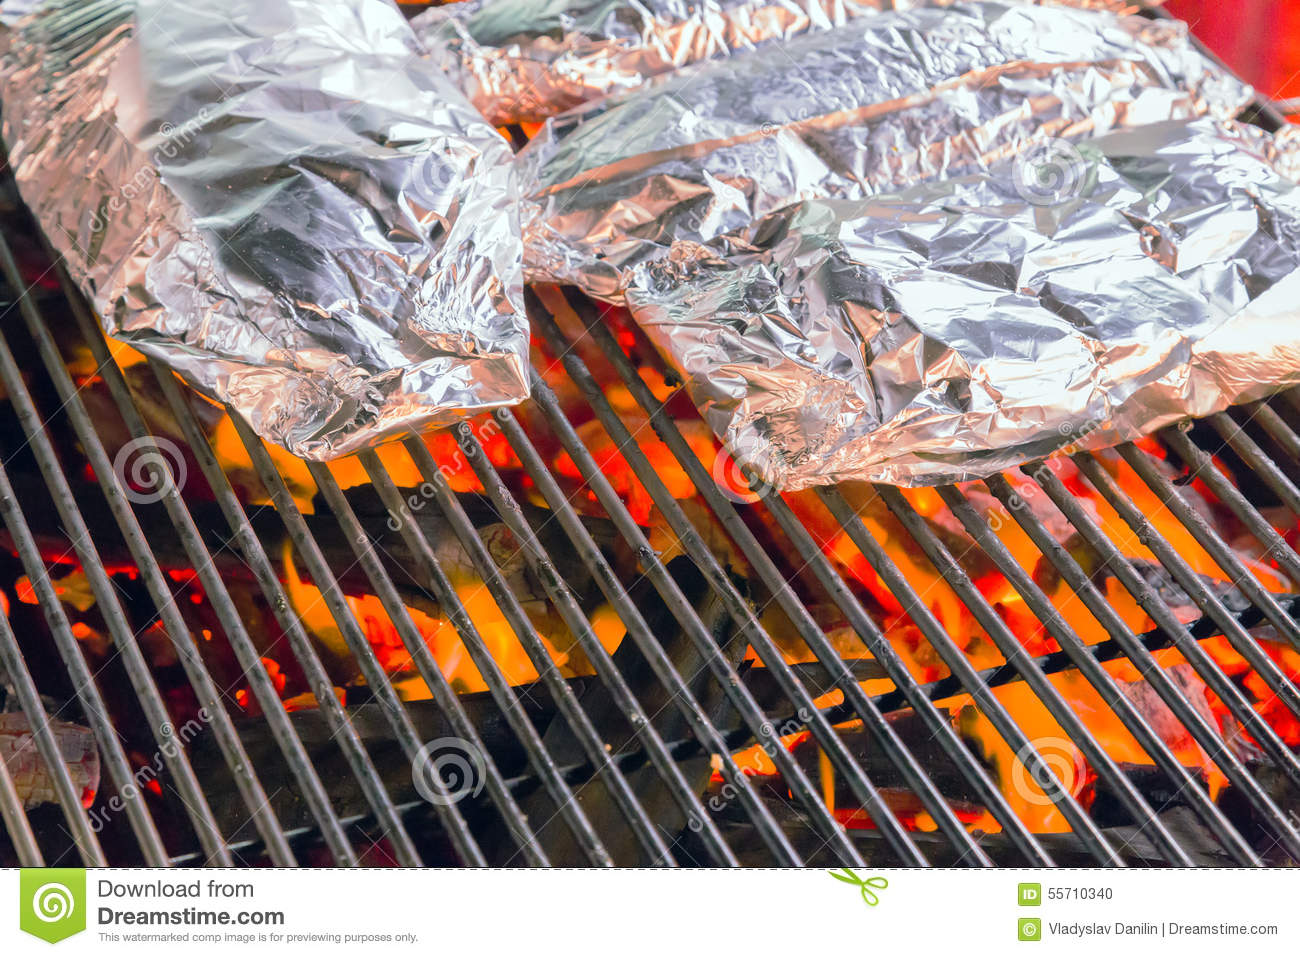 Barbecue Grill Cooking Food In Aluminum Stock Photo ...